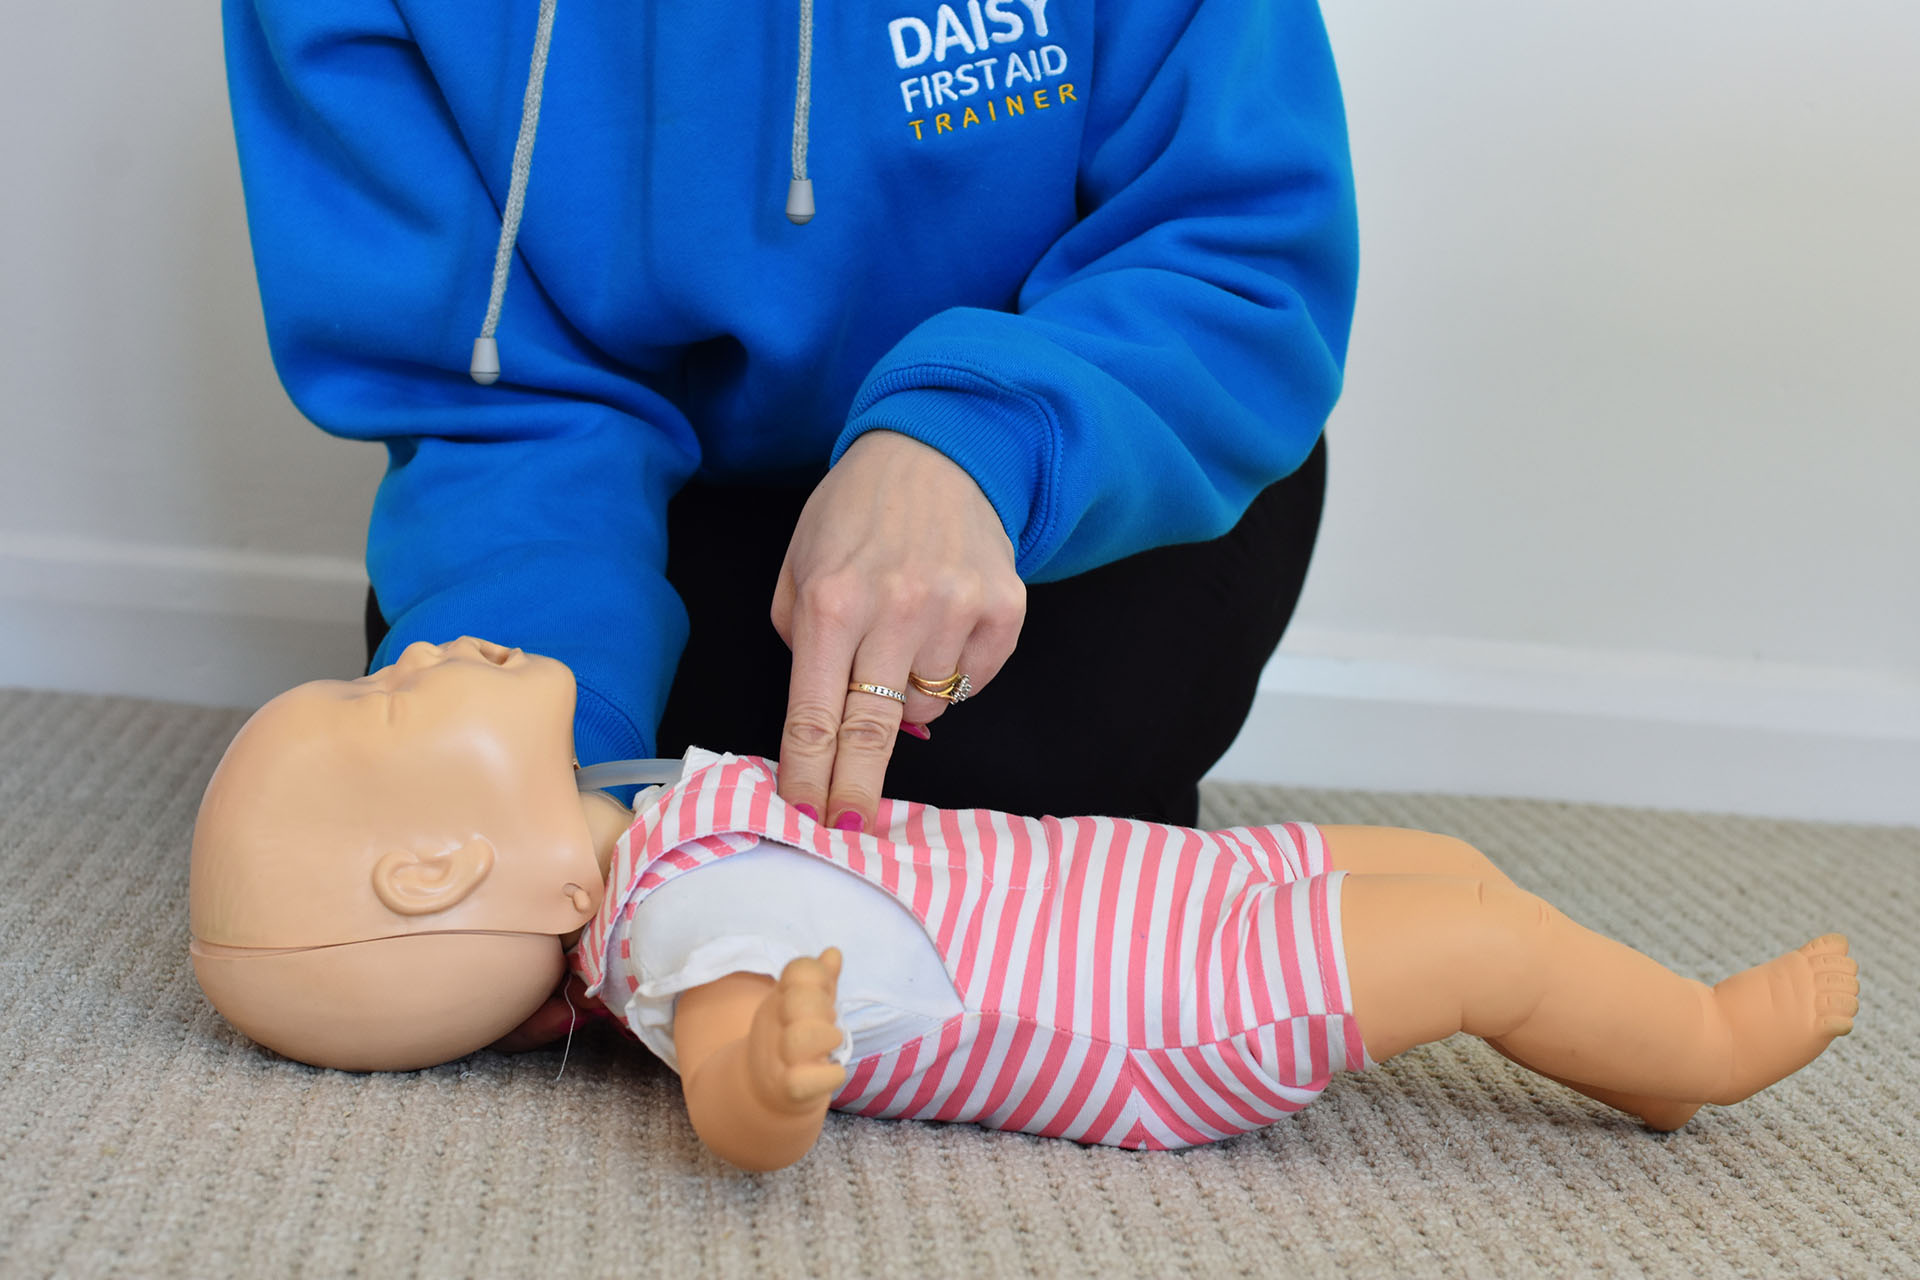 Daisy First Aid Guildford & Reigate's main image